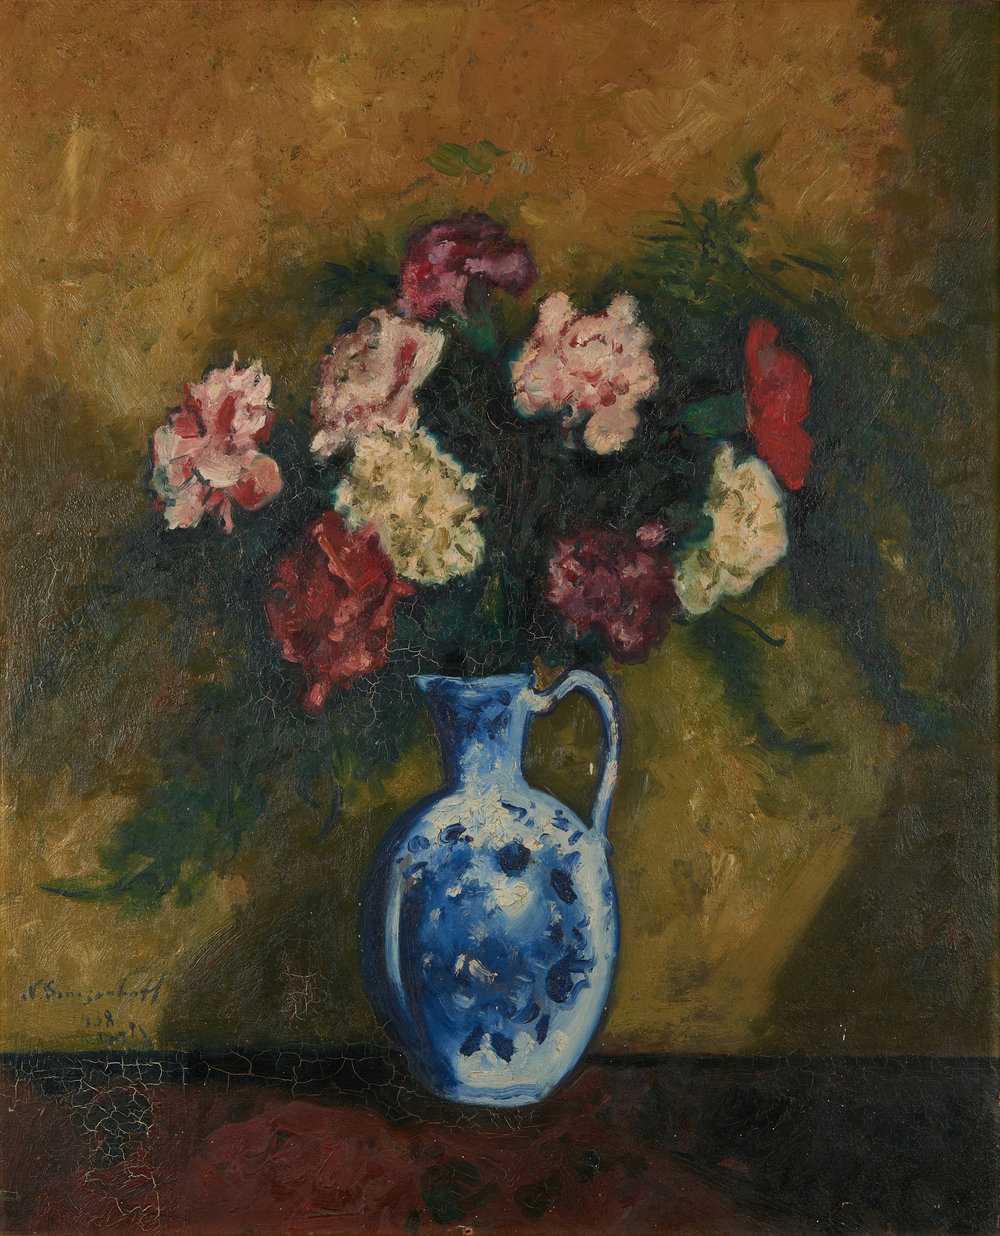 Still life with flowers. Oil on board. Signed and dated Paris 1938. Size: 61 x 50 cm.   Fine Art Photography Credit: Dan Korkelia